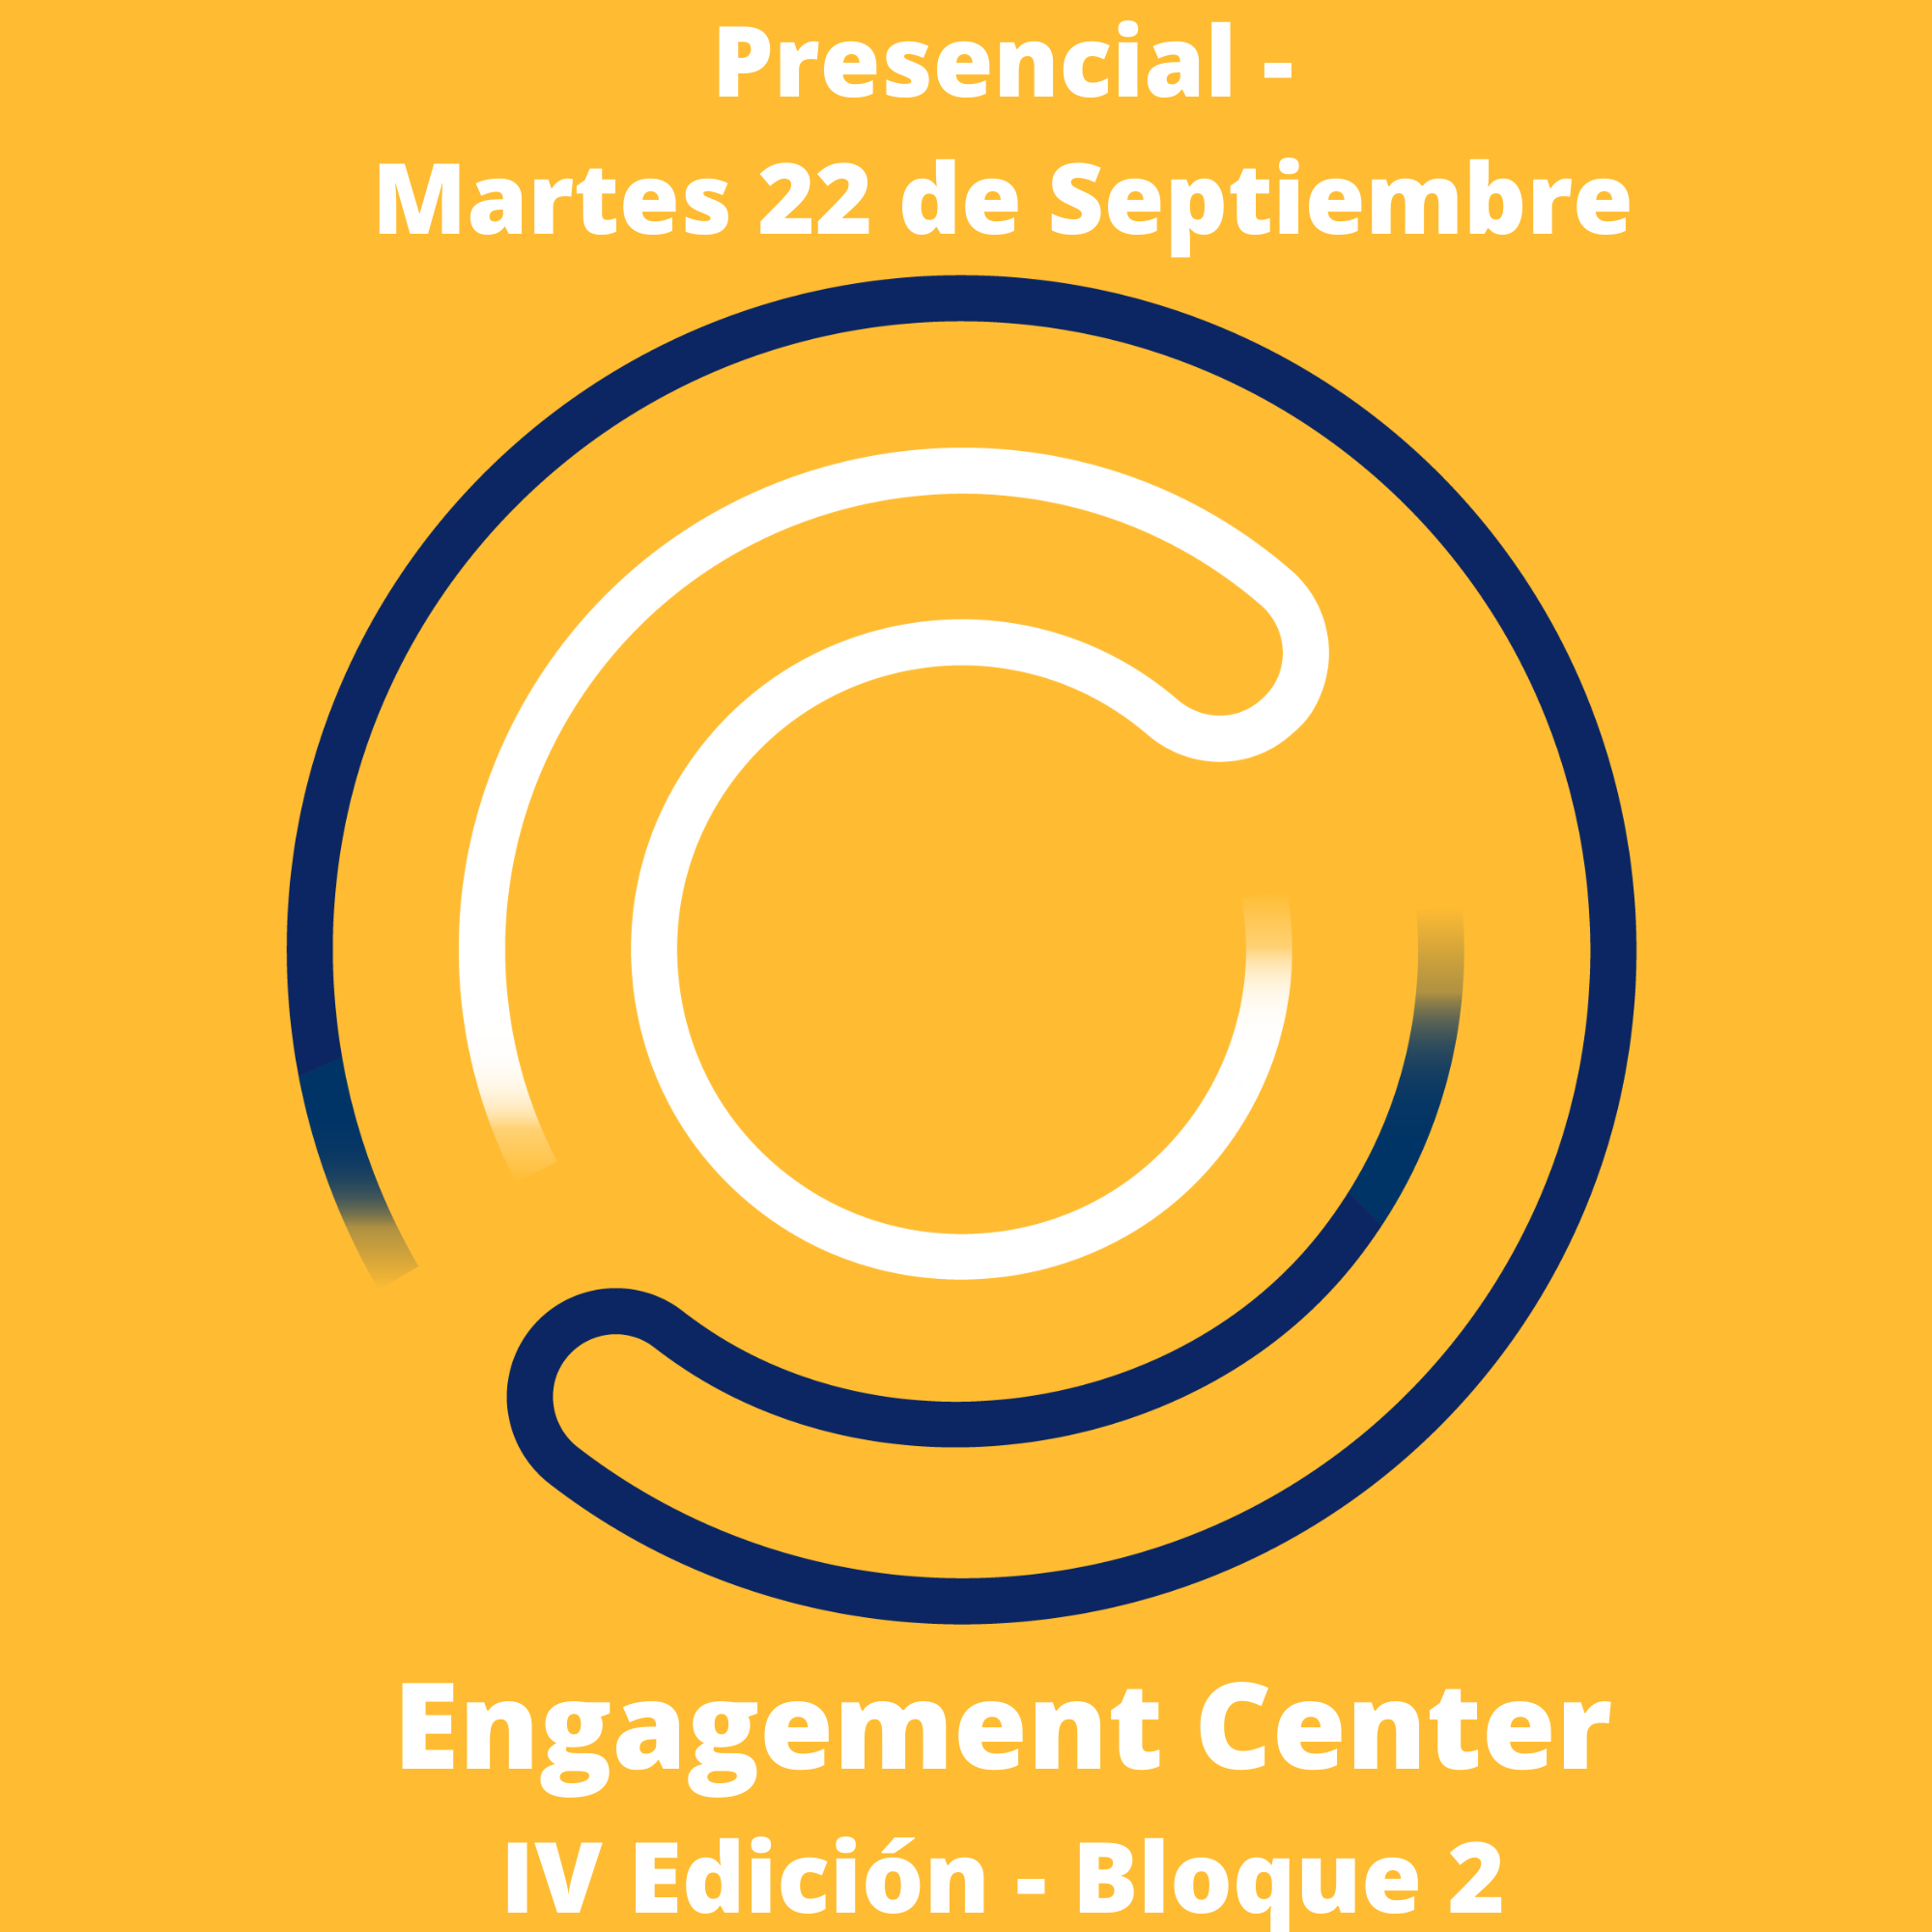 engagement center IV edición bloque presencial